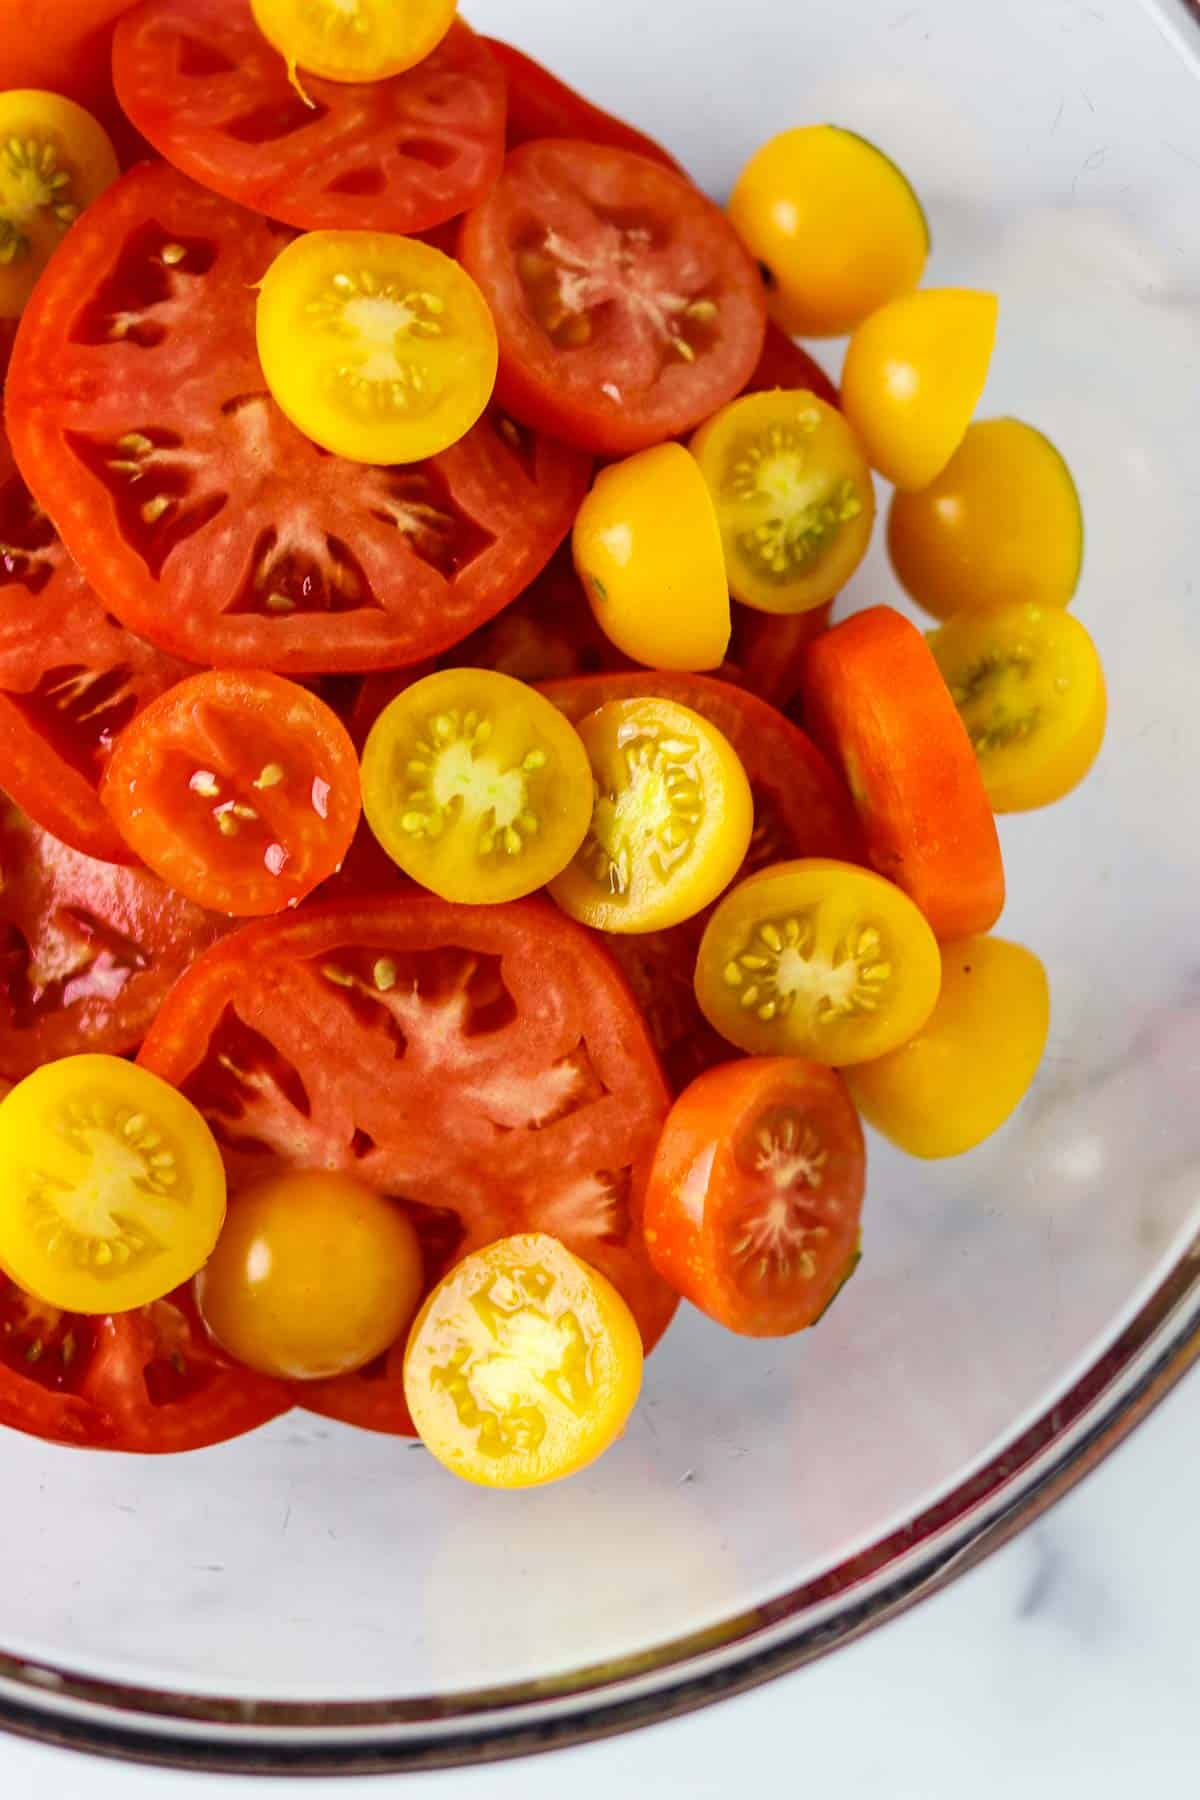 Sliced fresh tomatoes in a glass bowl.